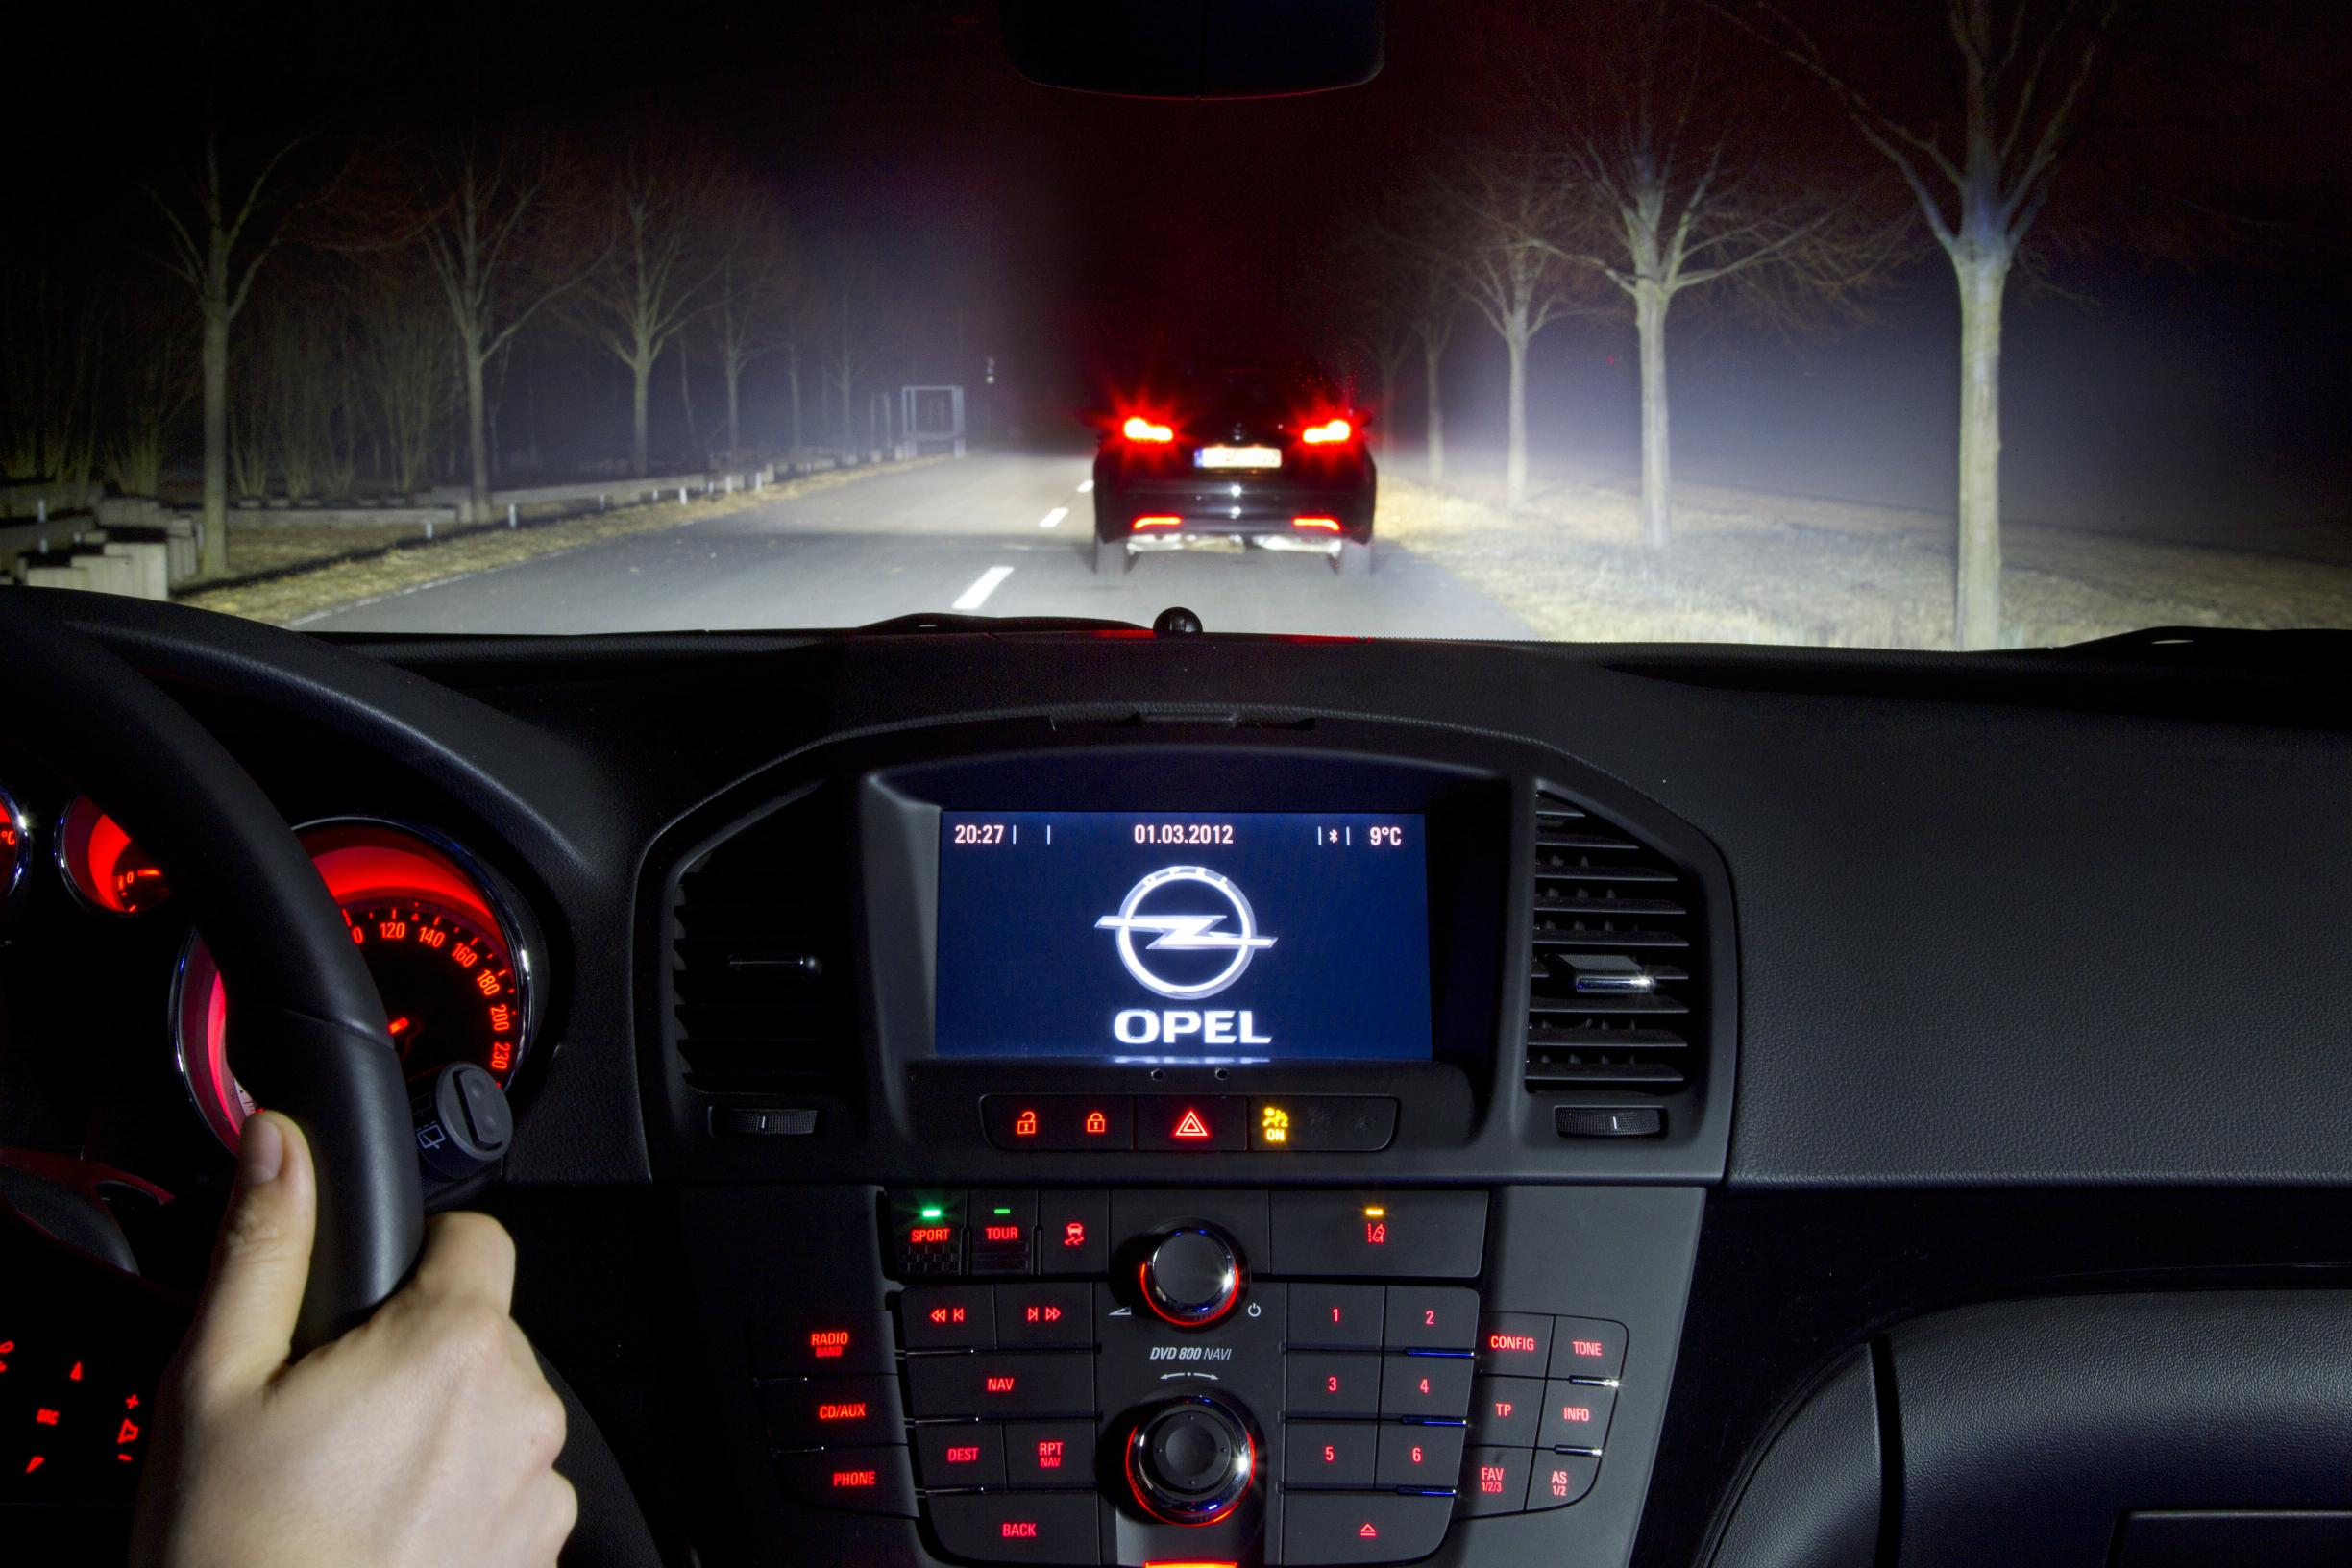 La tecnologia EYE-TRACKING di Opel